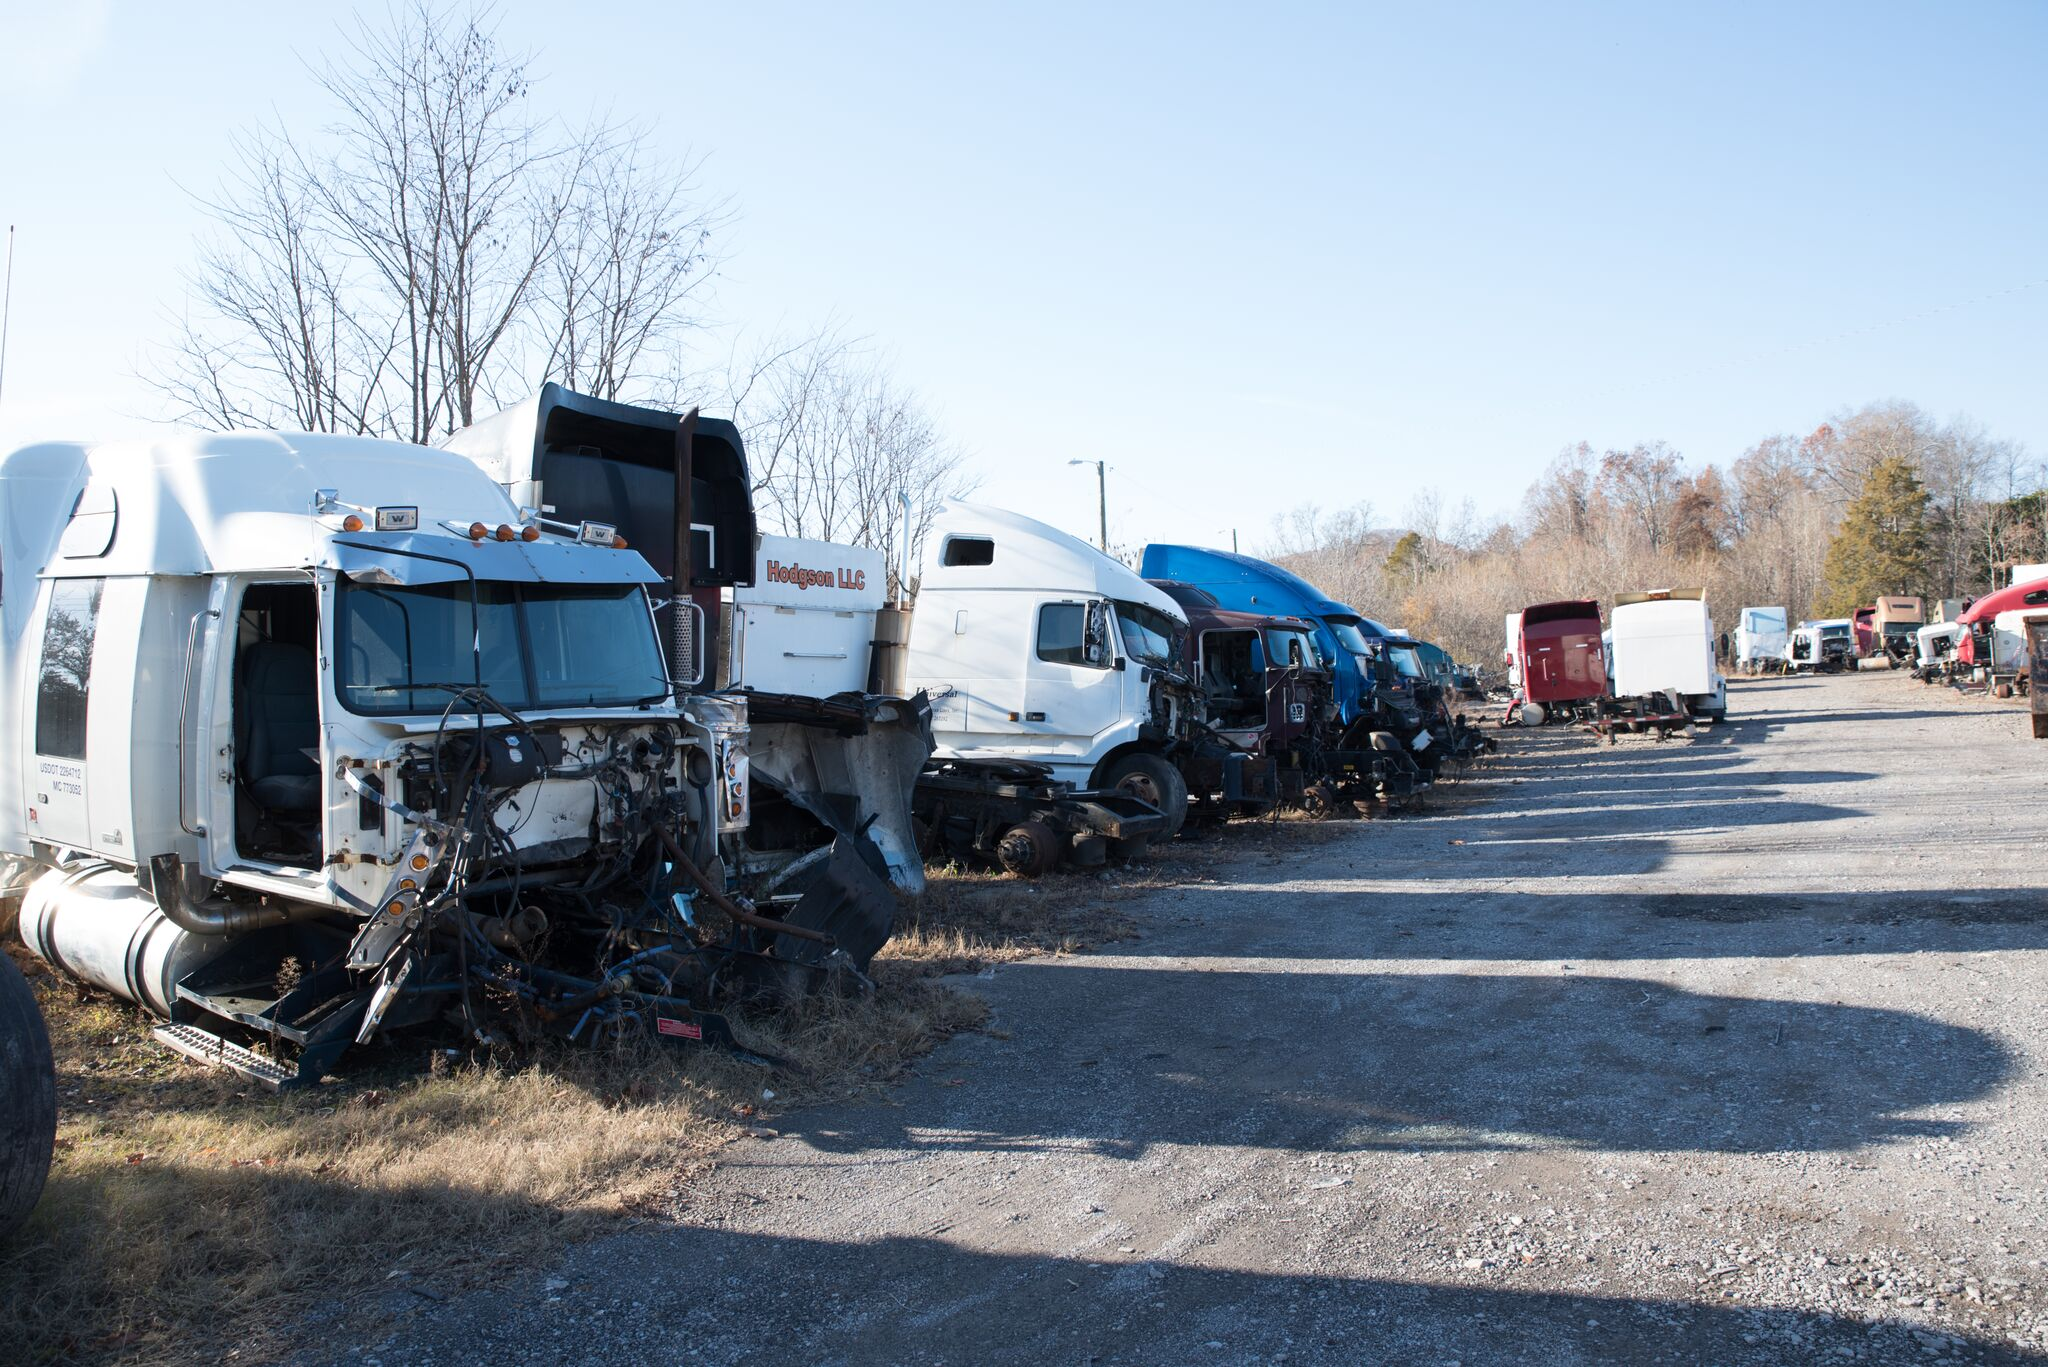 Used Tractor Parts Salvage Yards : John story knoxville truck parts and salvage yard